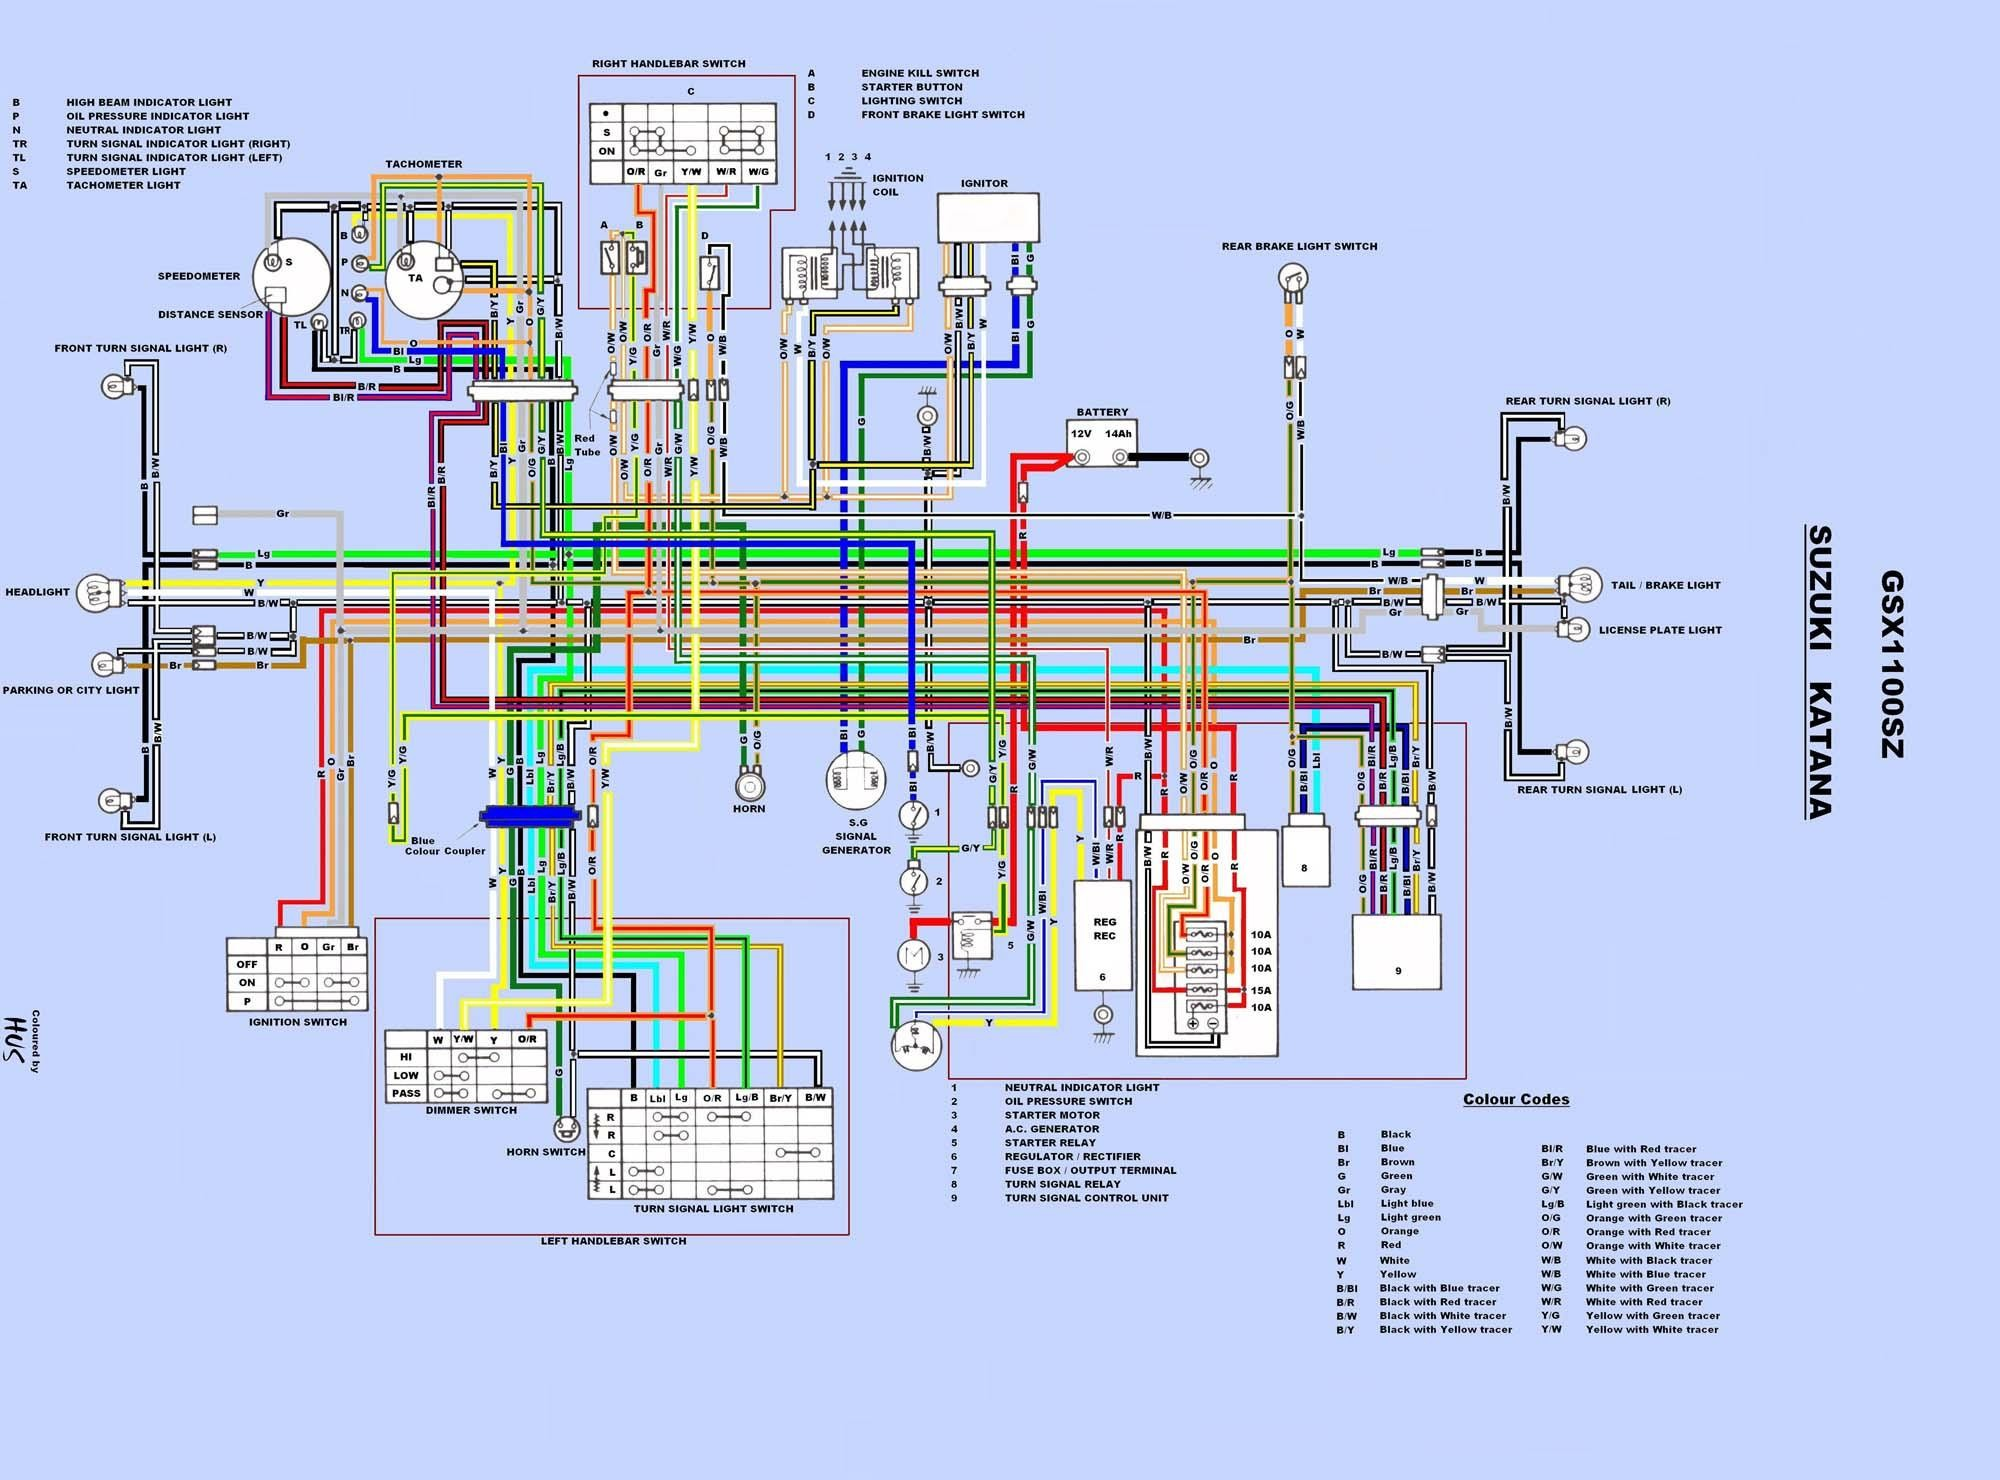 suzuki gsxr 600 wiring diagram trusted wiring diagrams u2022 rh shlnk co 2007 Suzuki Gsxr 1000 Wiring Diagram 2007 gsxr 1000 ignition wiring diagram